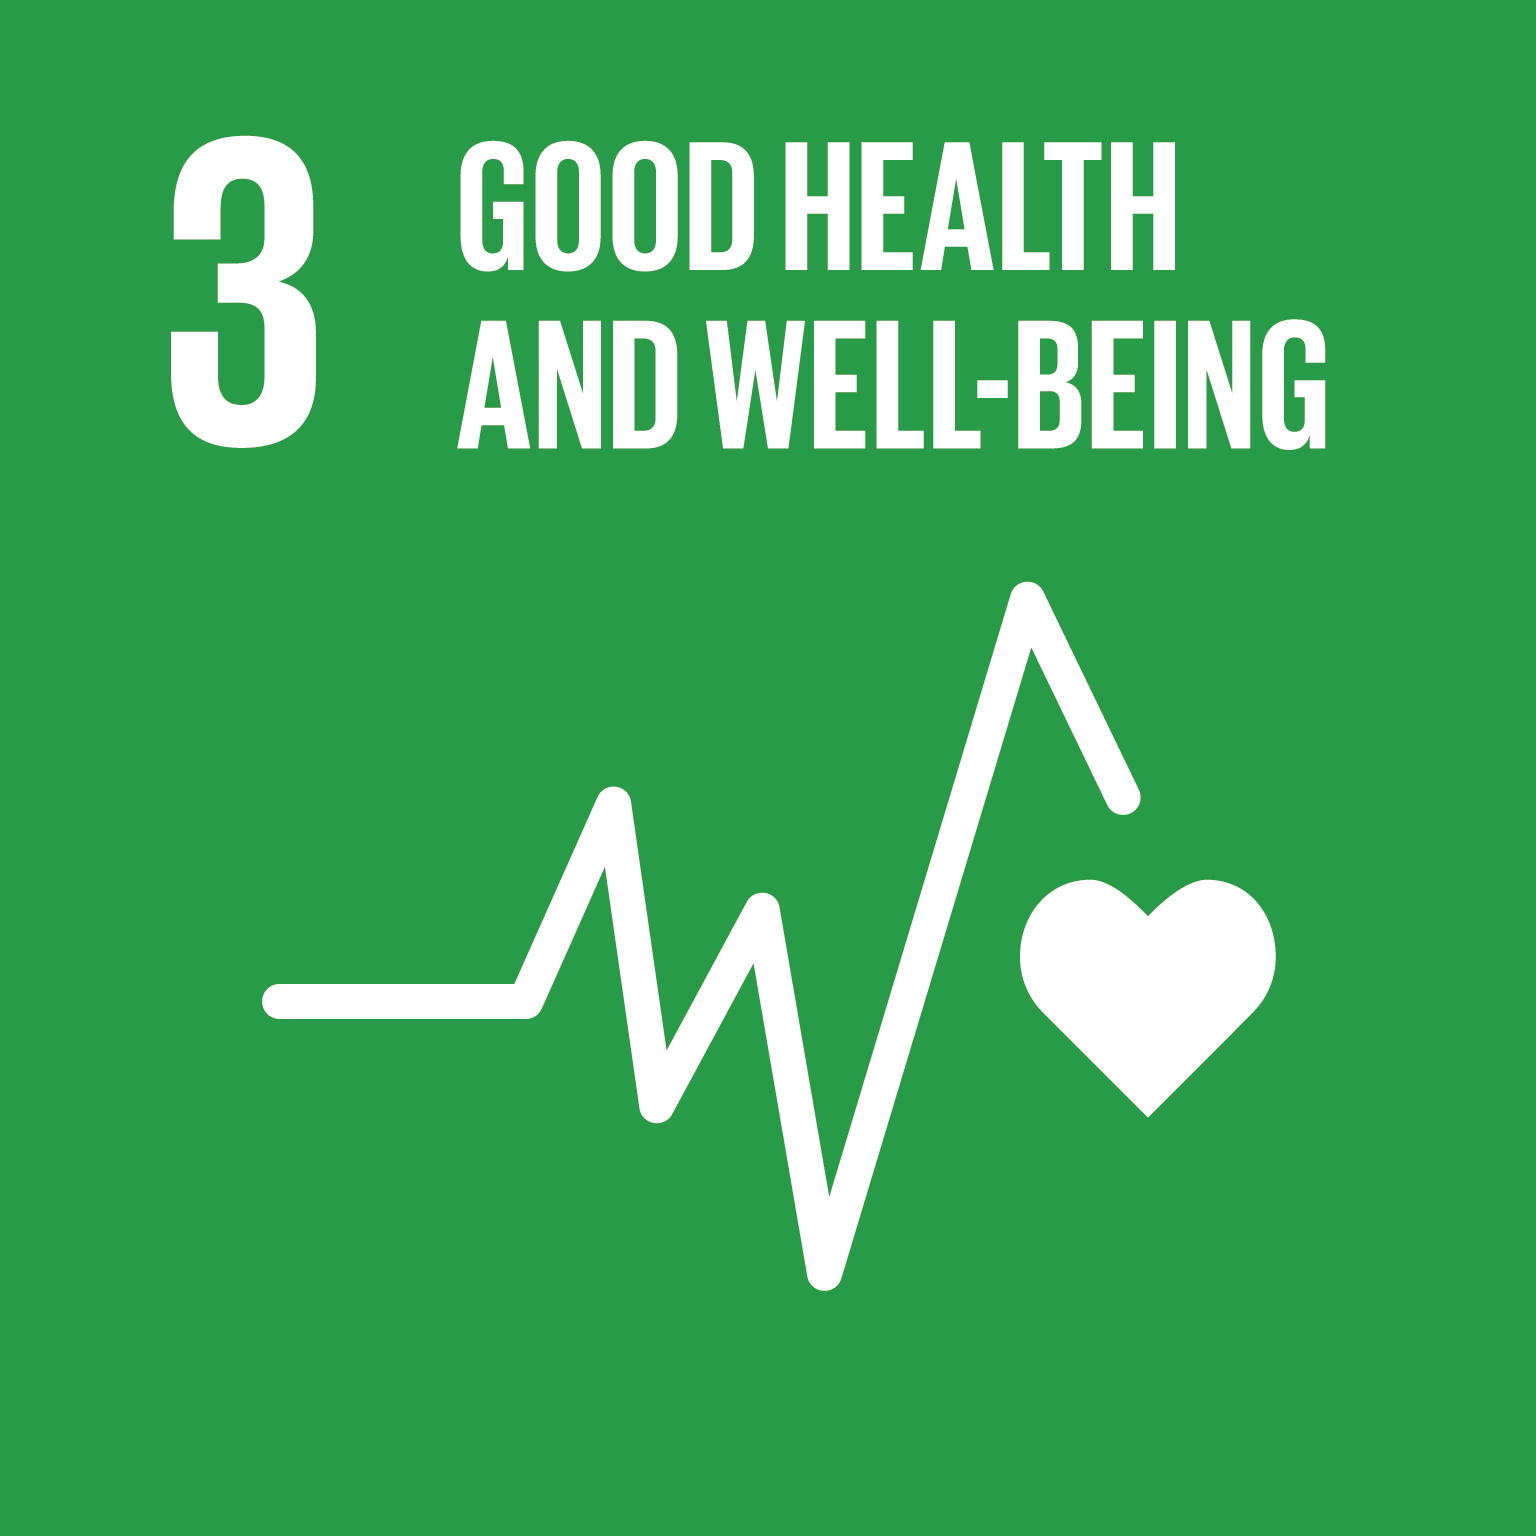 Good health and well-being logo.